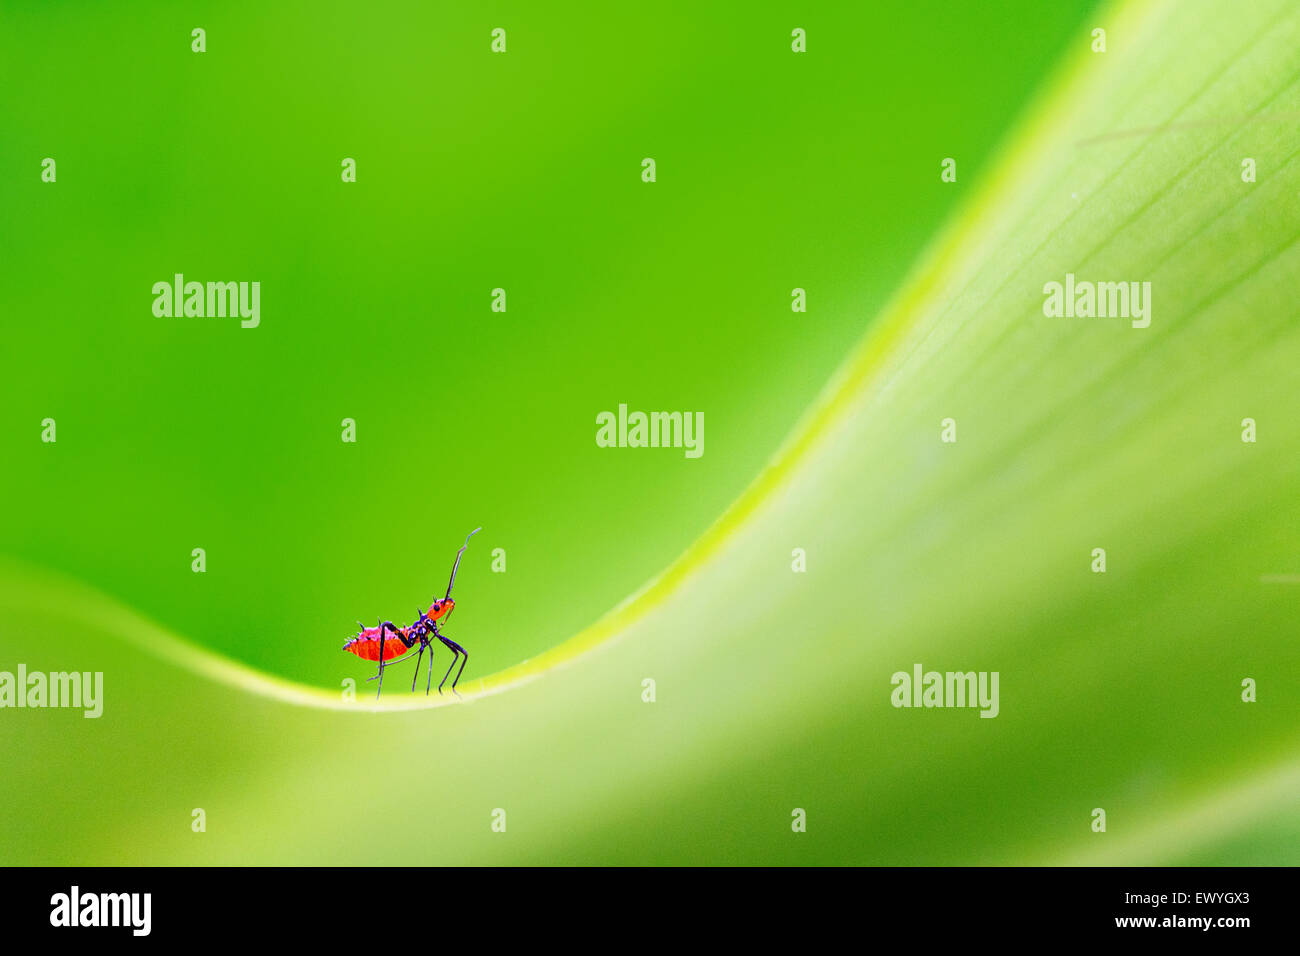 Close up of an insect, Gorontalo, Indonesia - Stock Image